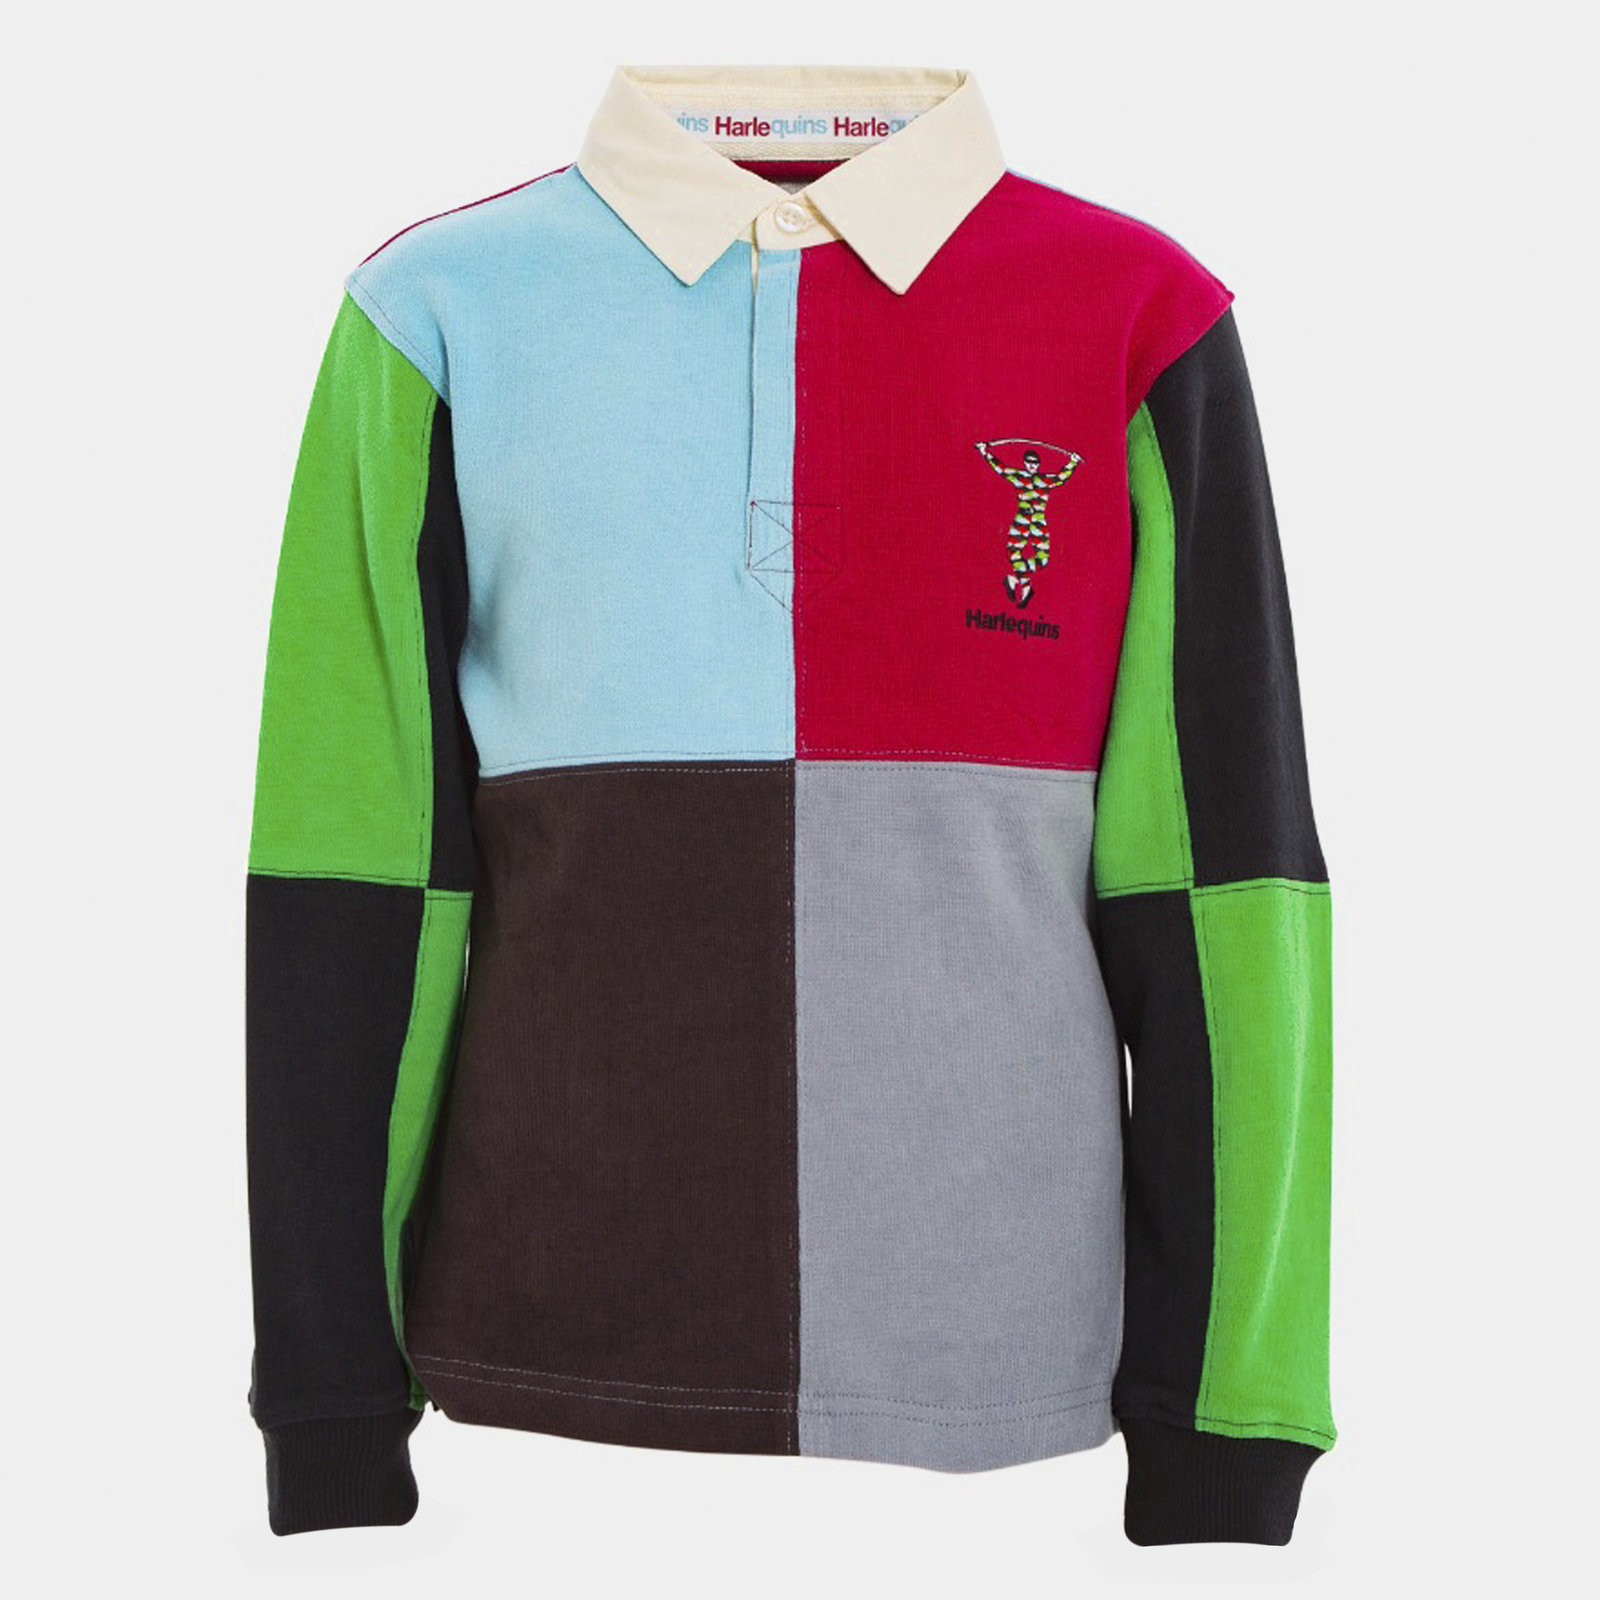 Retro Harlequins Shirt